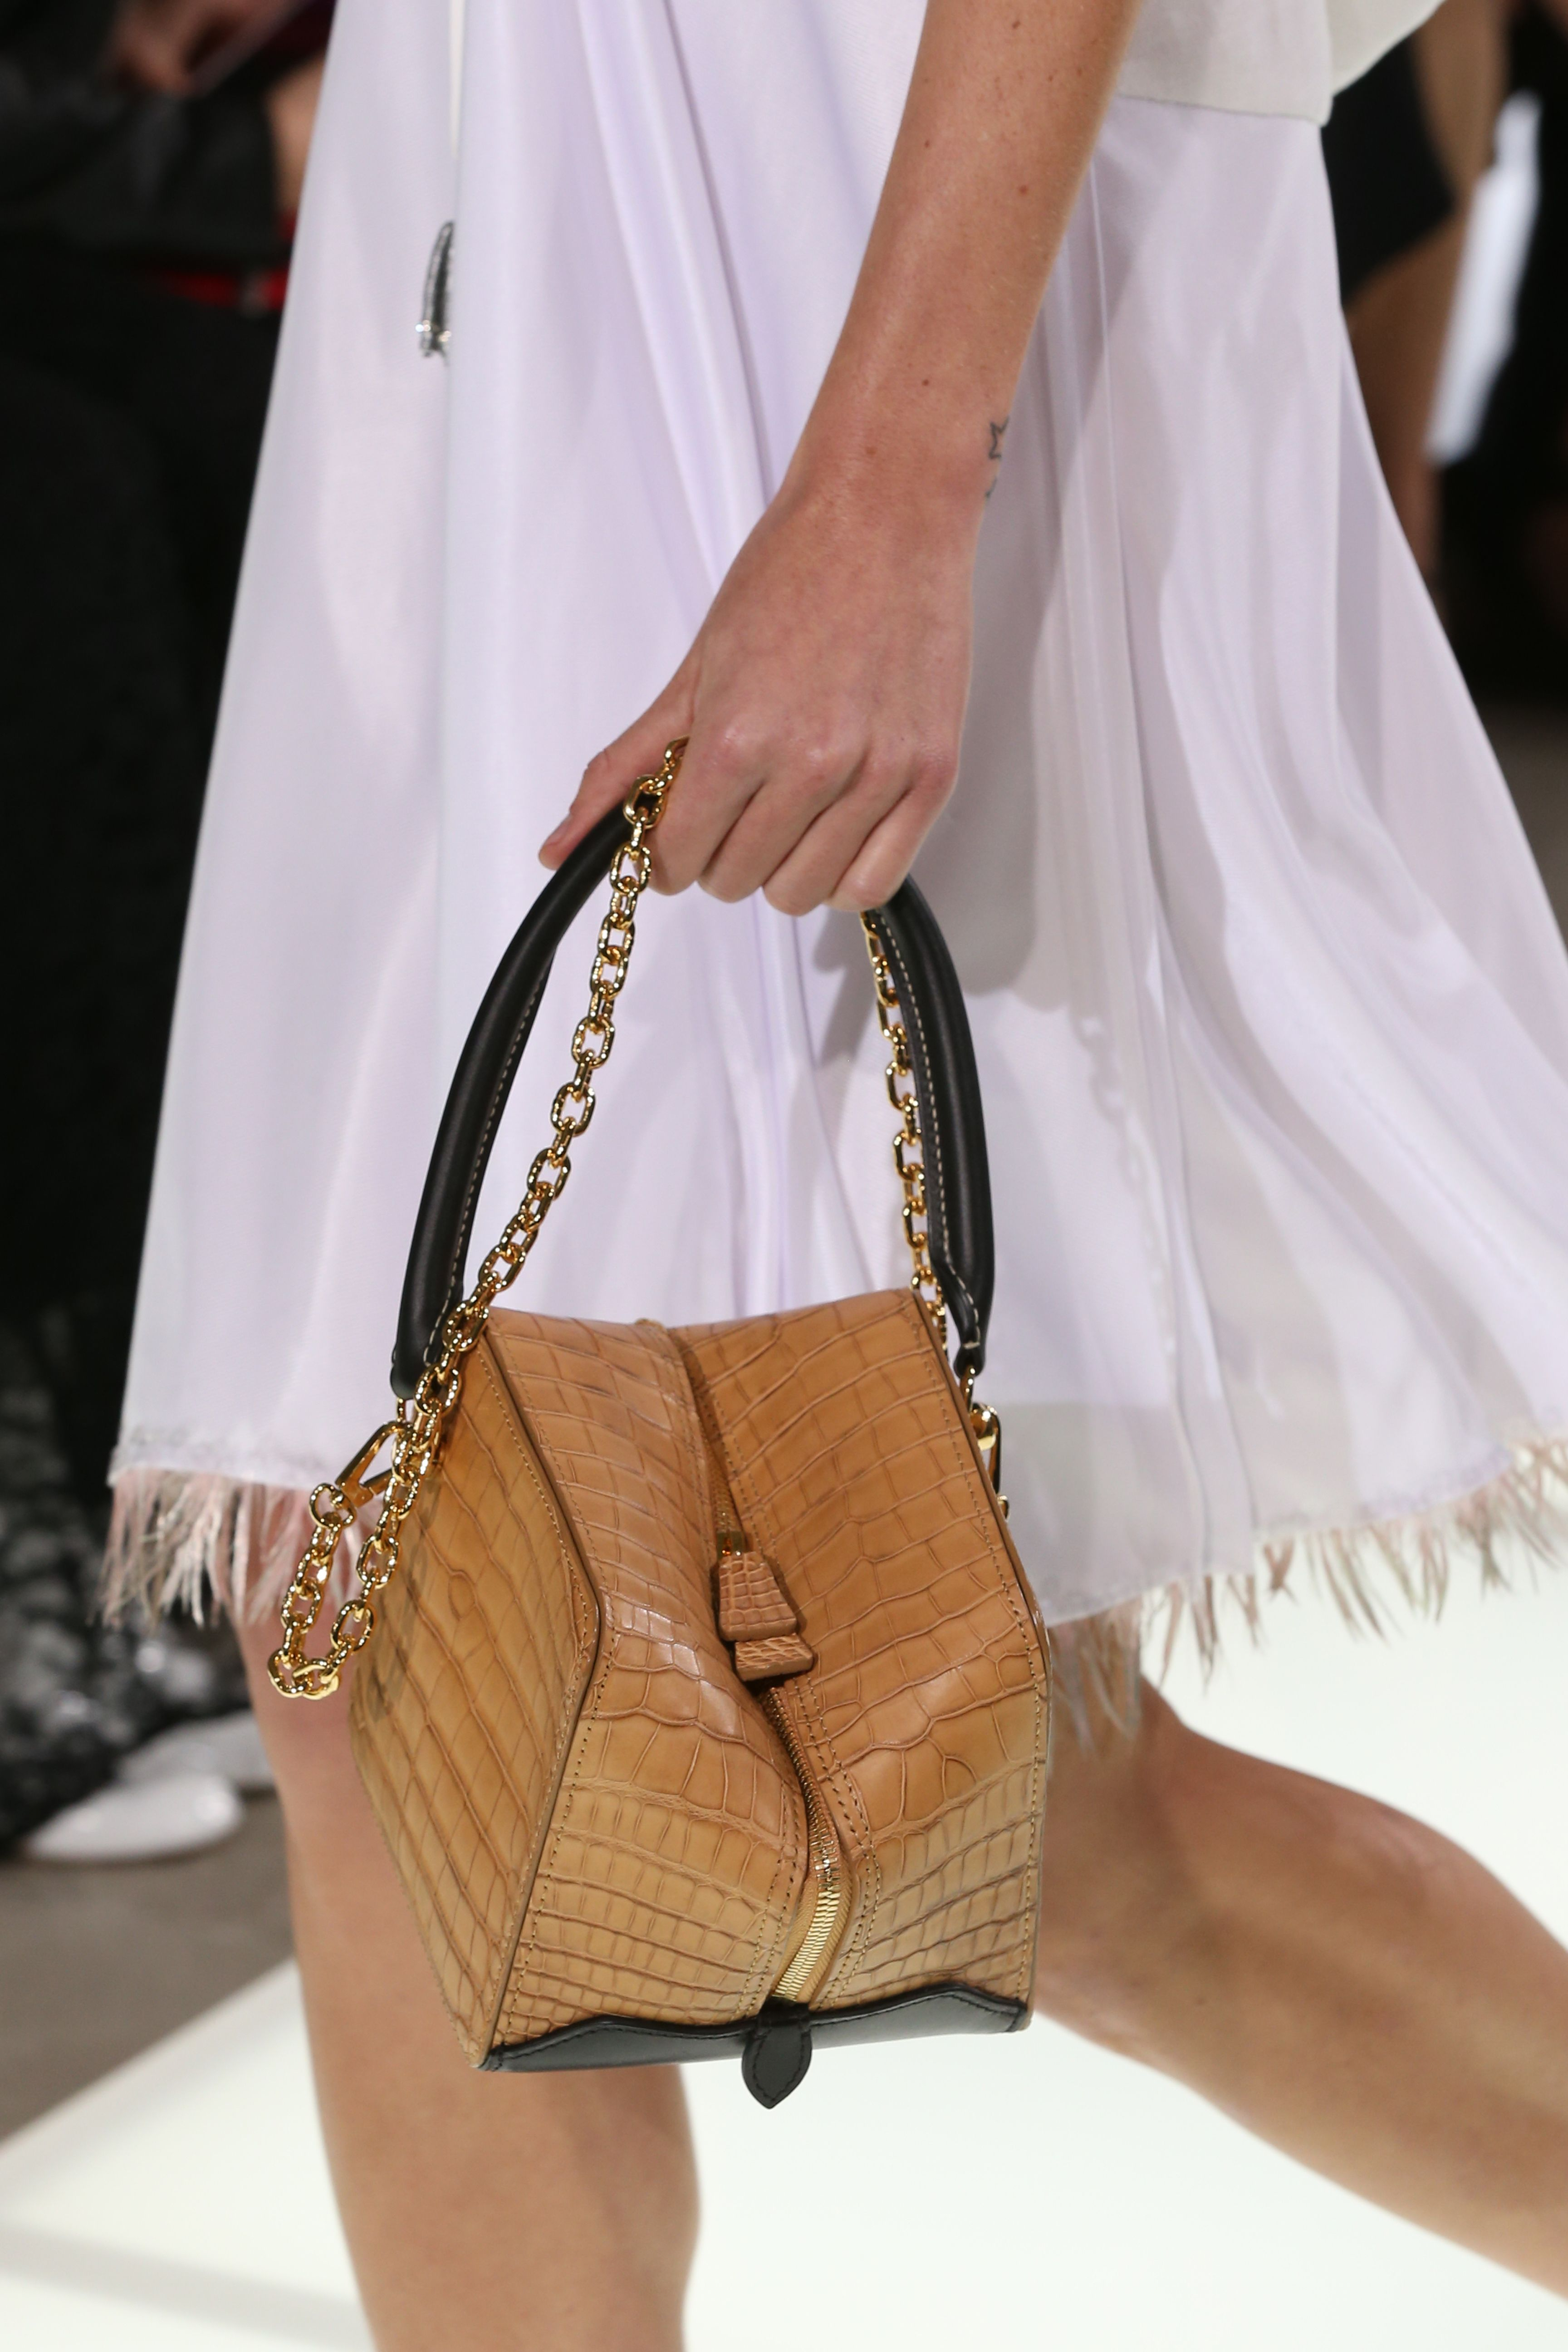 4f05fd32eeb0 A bag from the Louis Vuitton Spring-Summer 2018 Show by Nicolas Ghesquiere.  Watch the show now at louisvuitton.com.